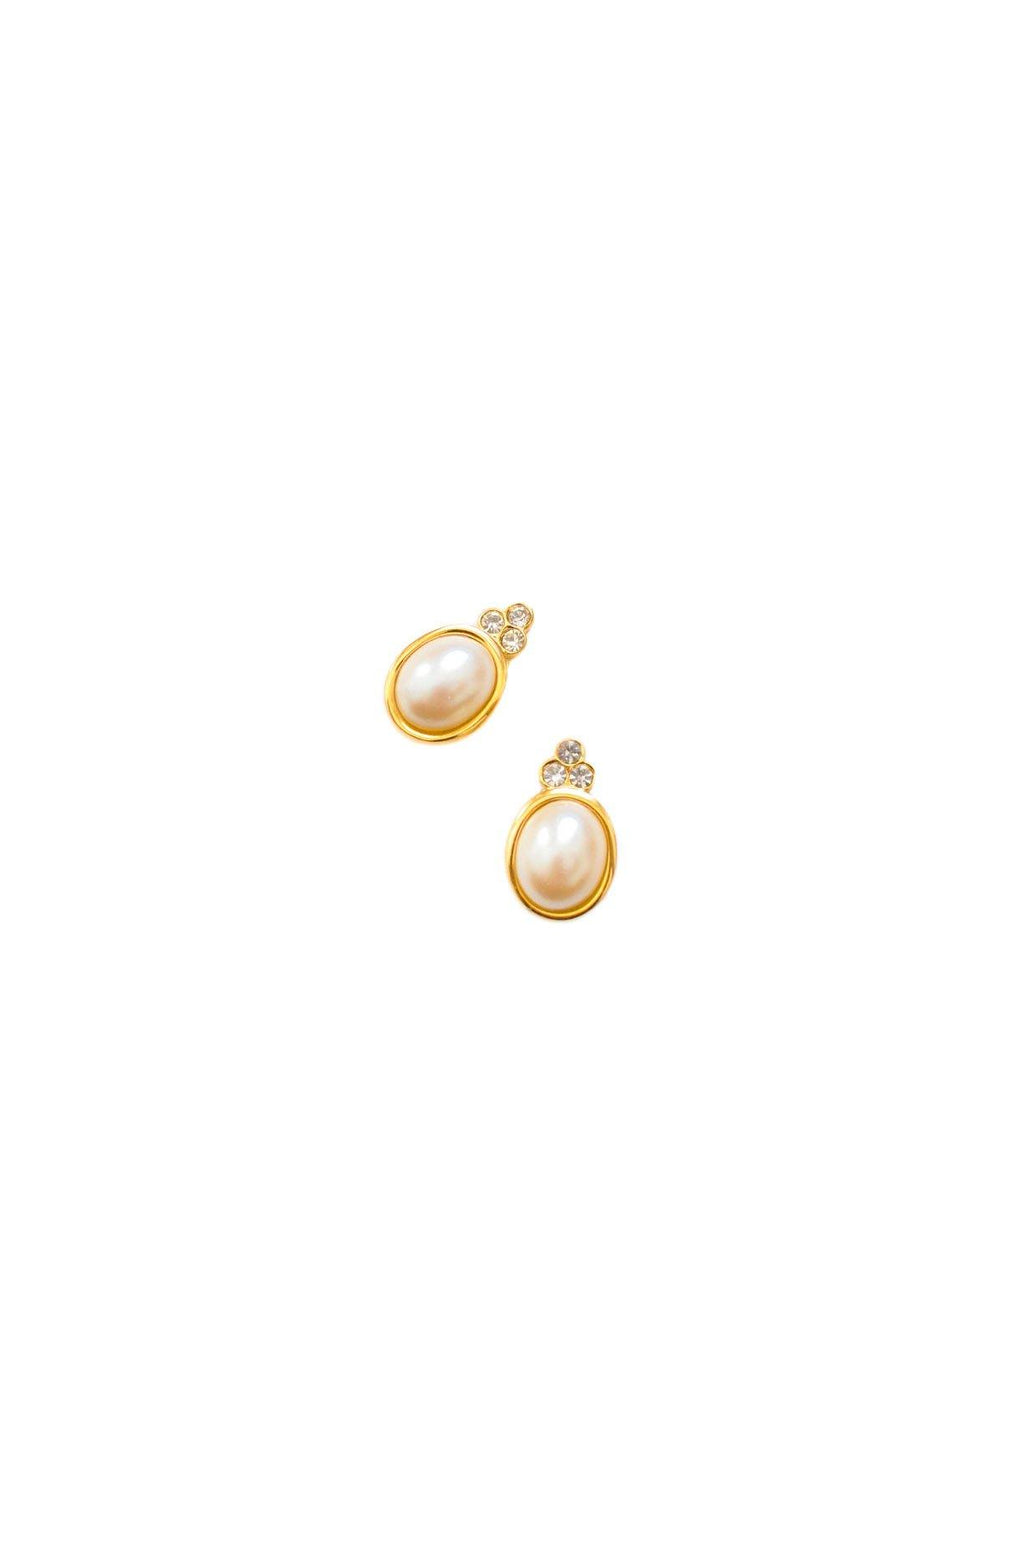 Givenchy Mini Pearl Pierced Earrings